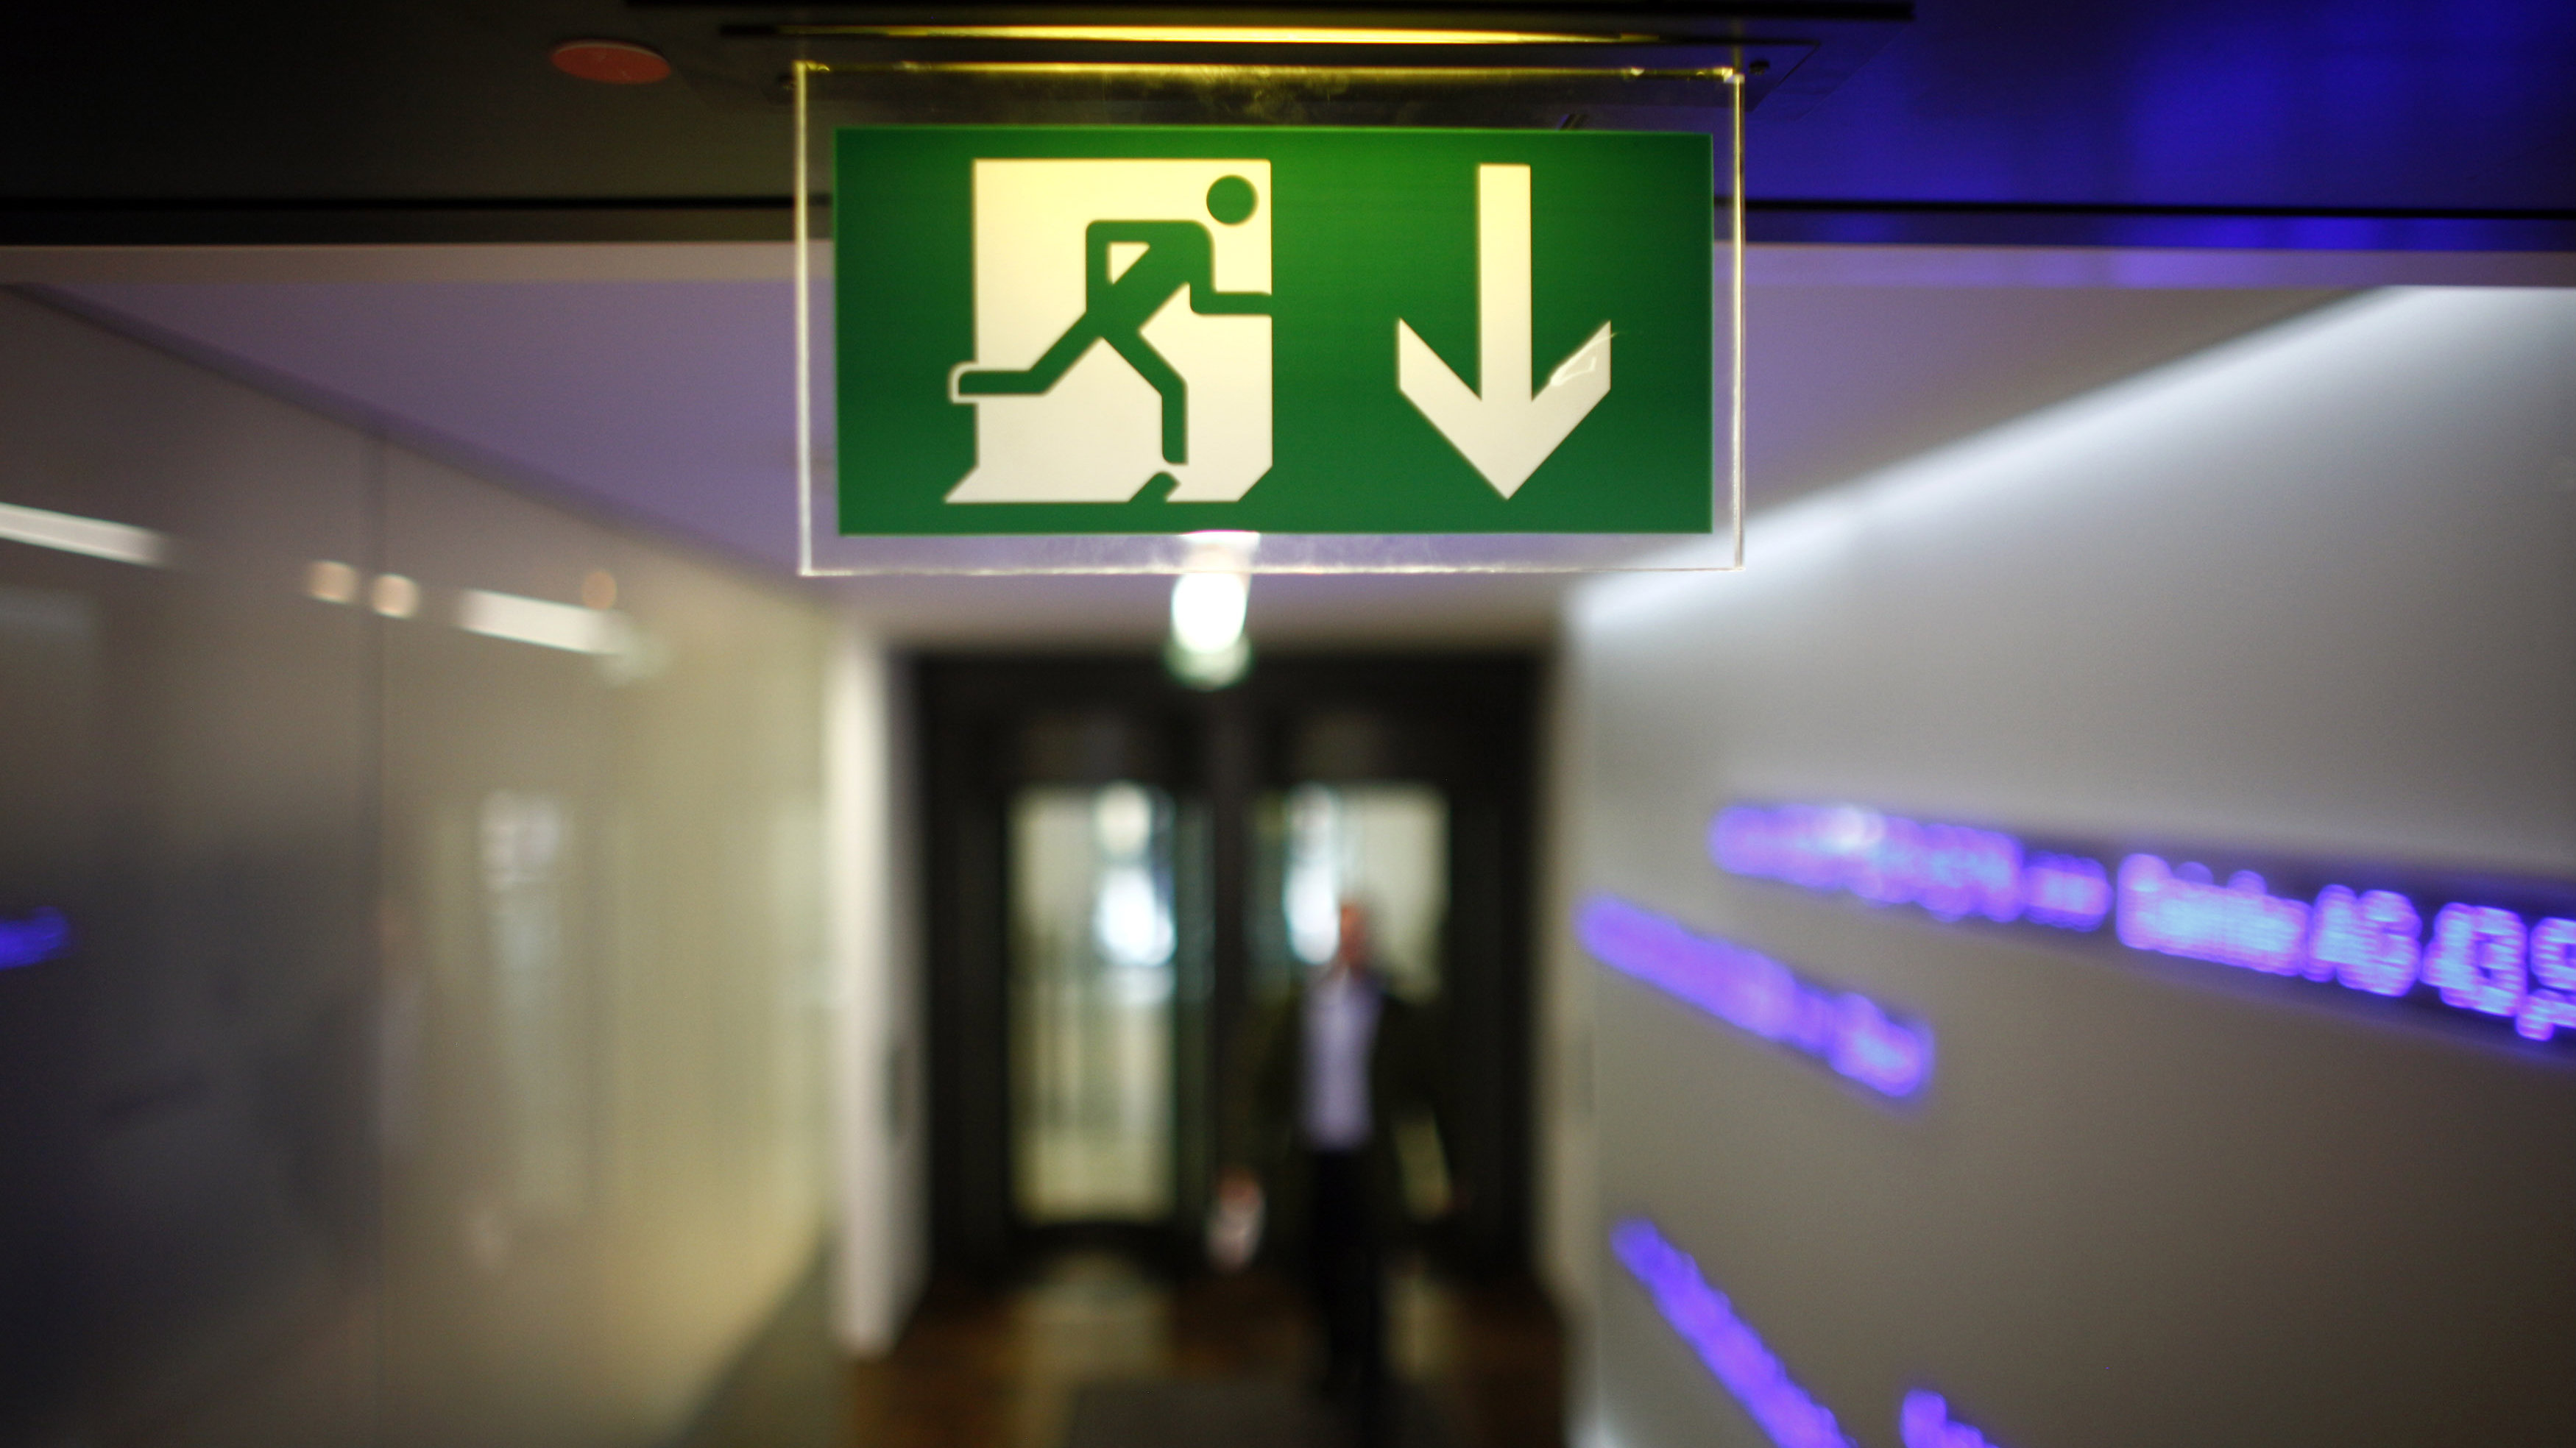 A bourse trader enters the trading floor under a emergency exit sign at Frankfurt's stock exchange, September 14, 2010.